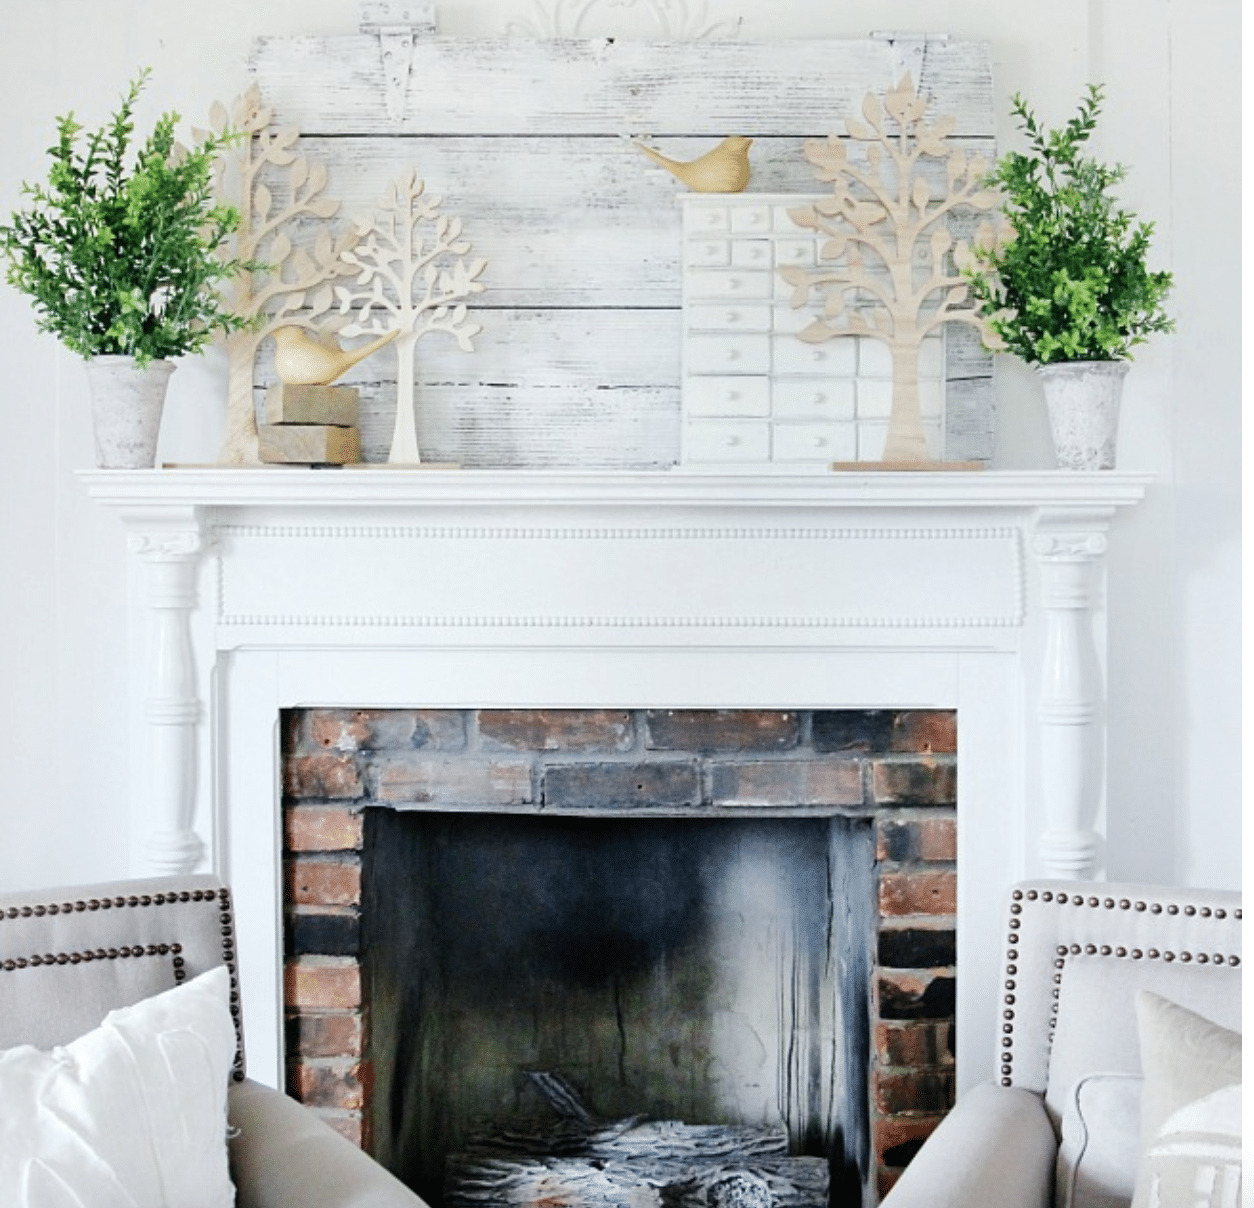 spring mantel decor with tree cut outs, greenery, and bird figurines